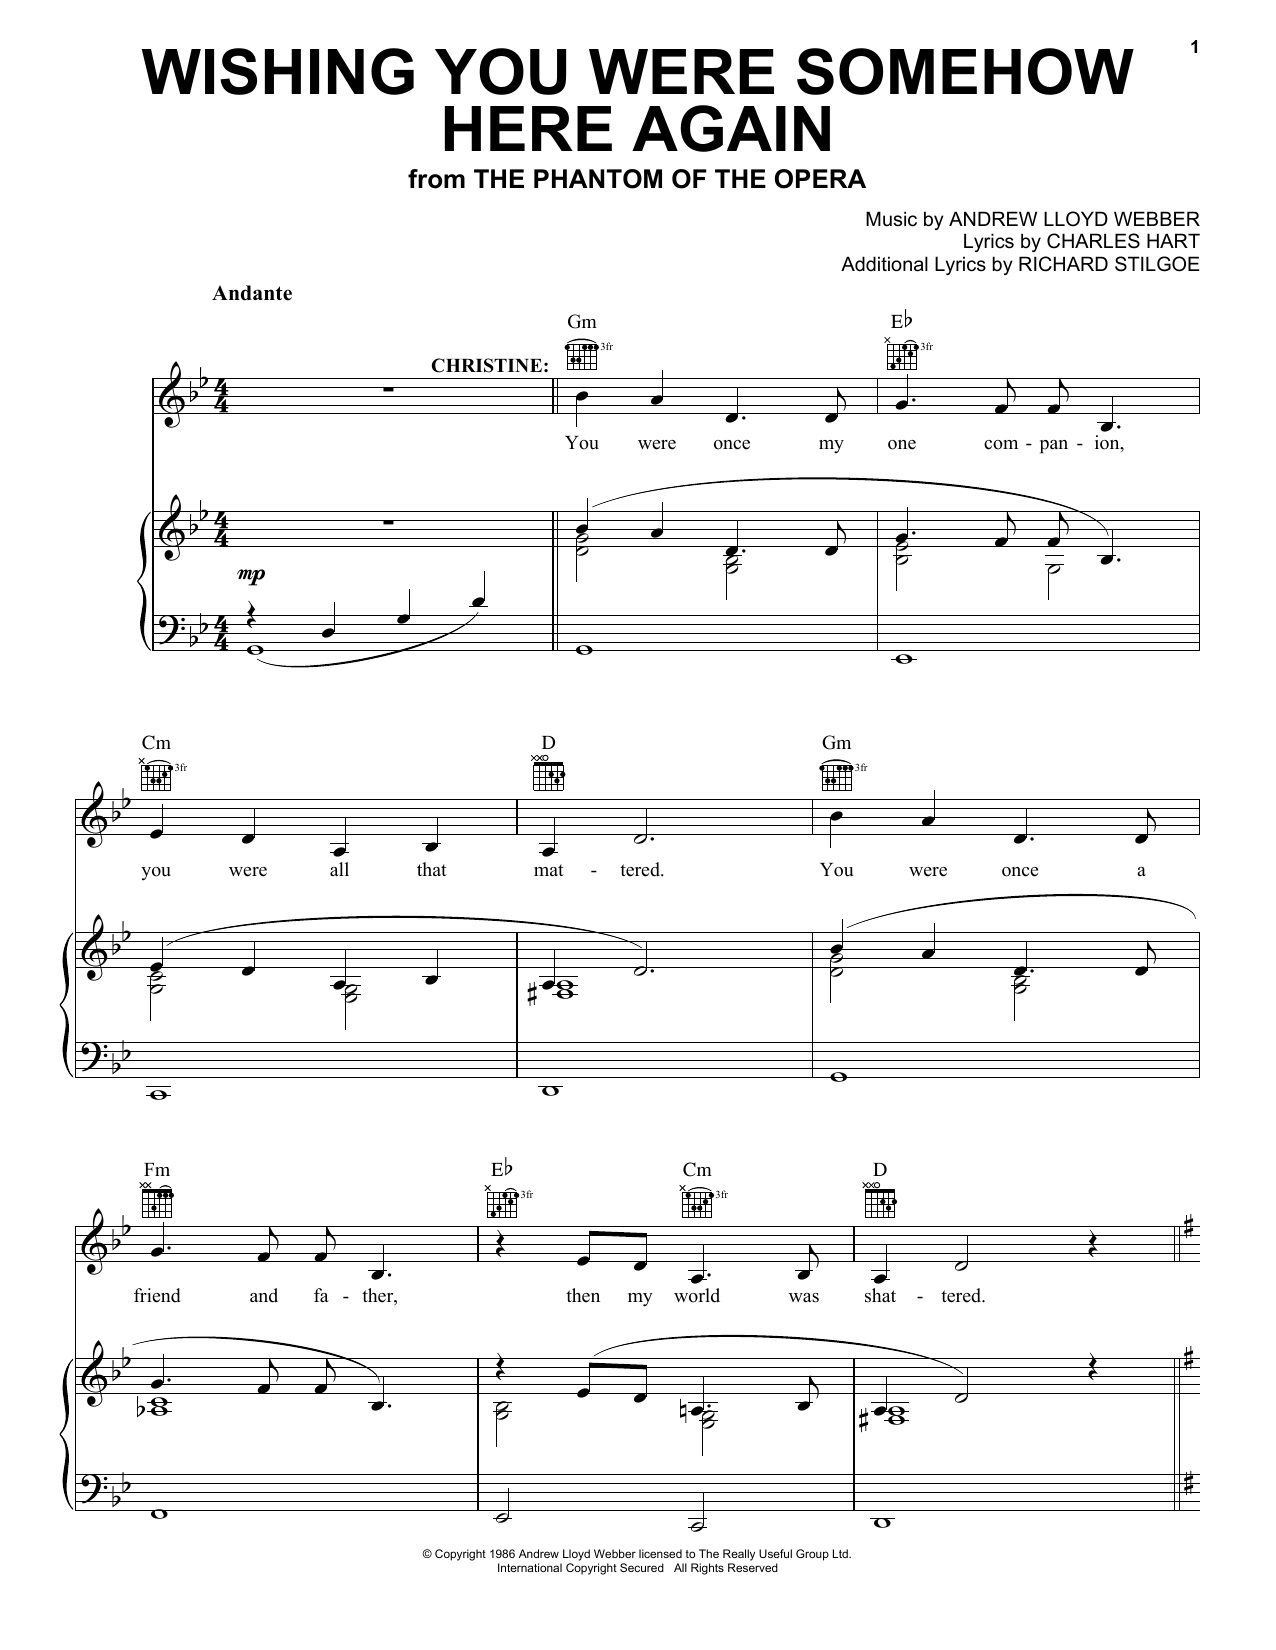 Andrew Lloyd Webber Wishing You Were Somehow Here Again (from The Phantom Of The Opera) sheet music notes printable PDF score